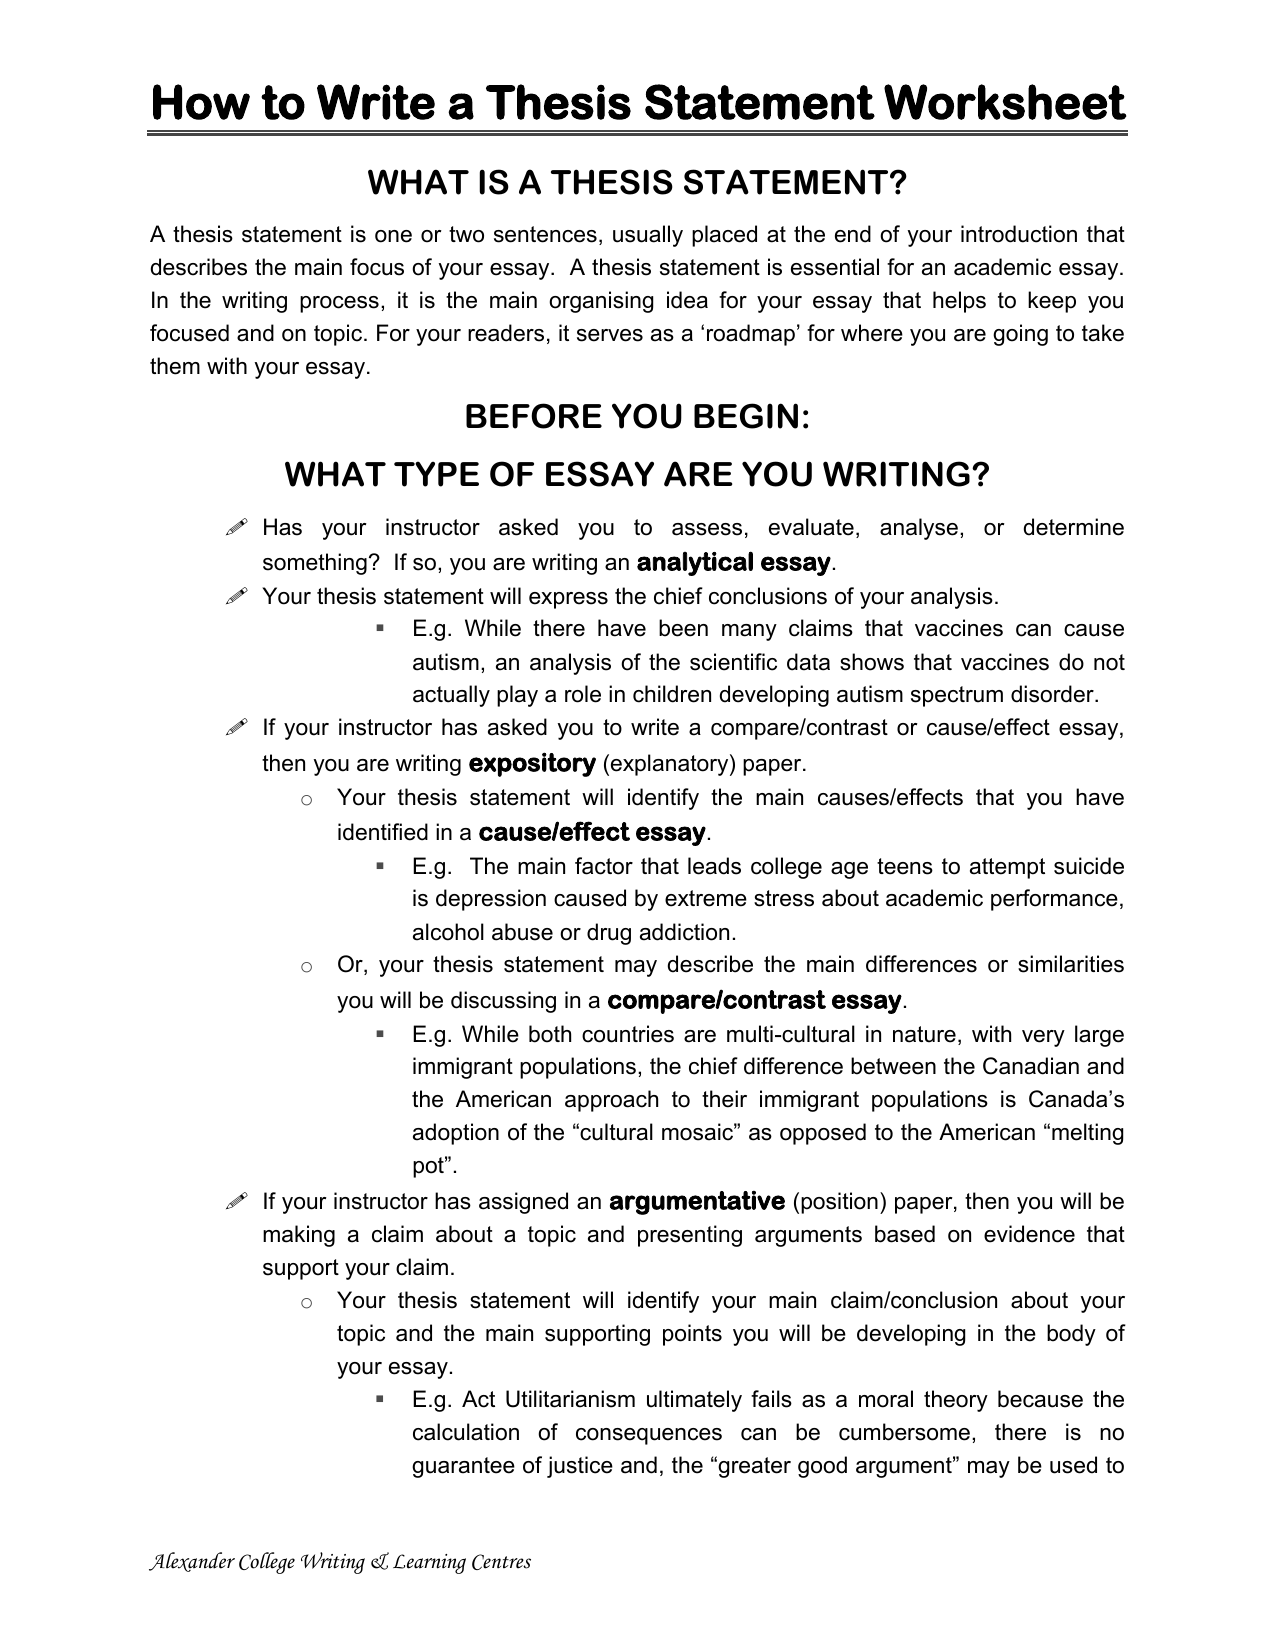 Writing Guide Worksheet Thesis Statement